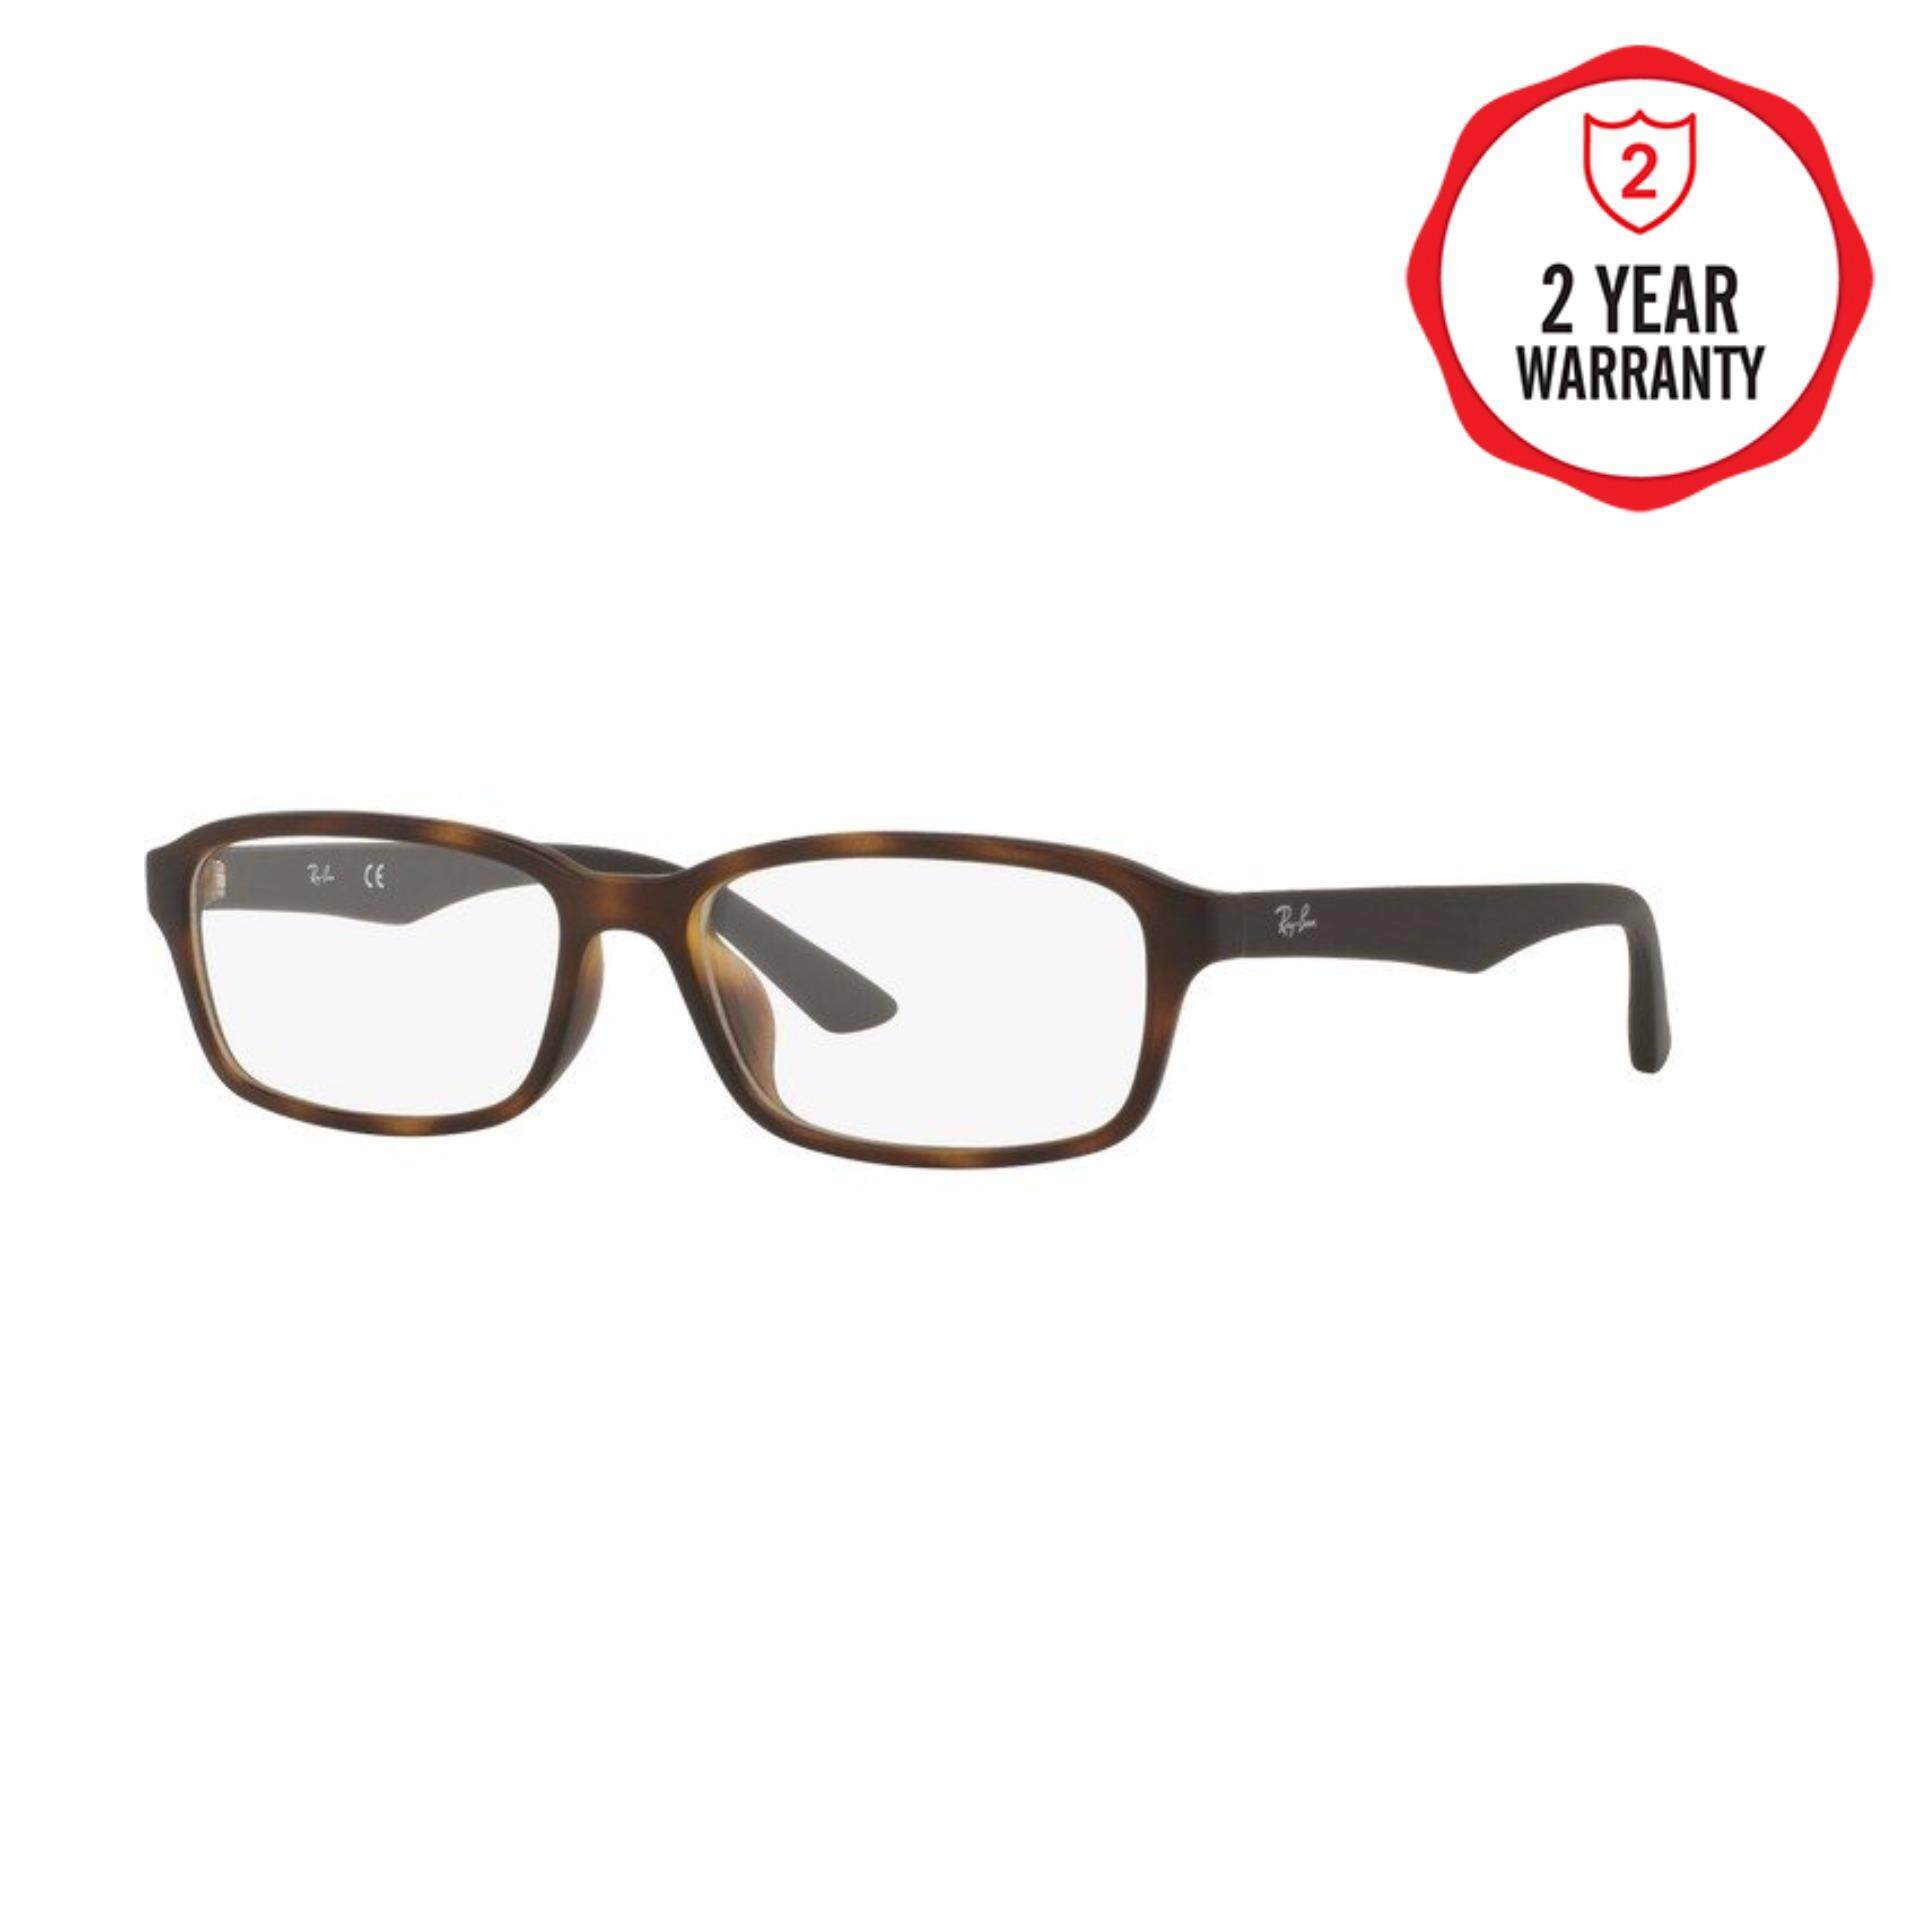 53d9f146978c93 Ray Ban Products for the Best Price in Malaysia